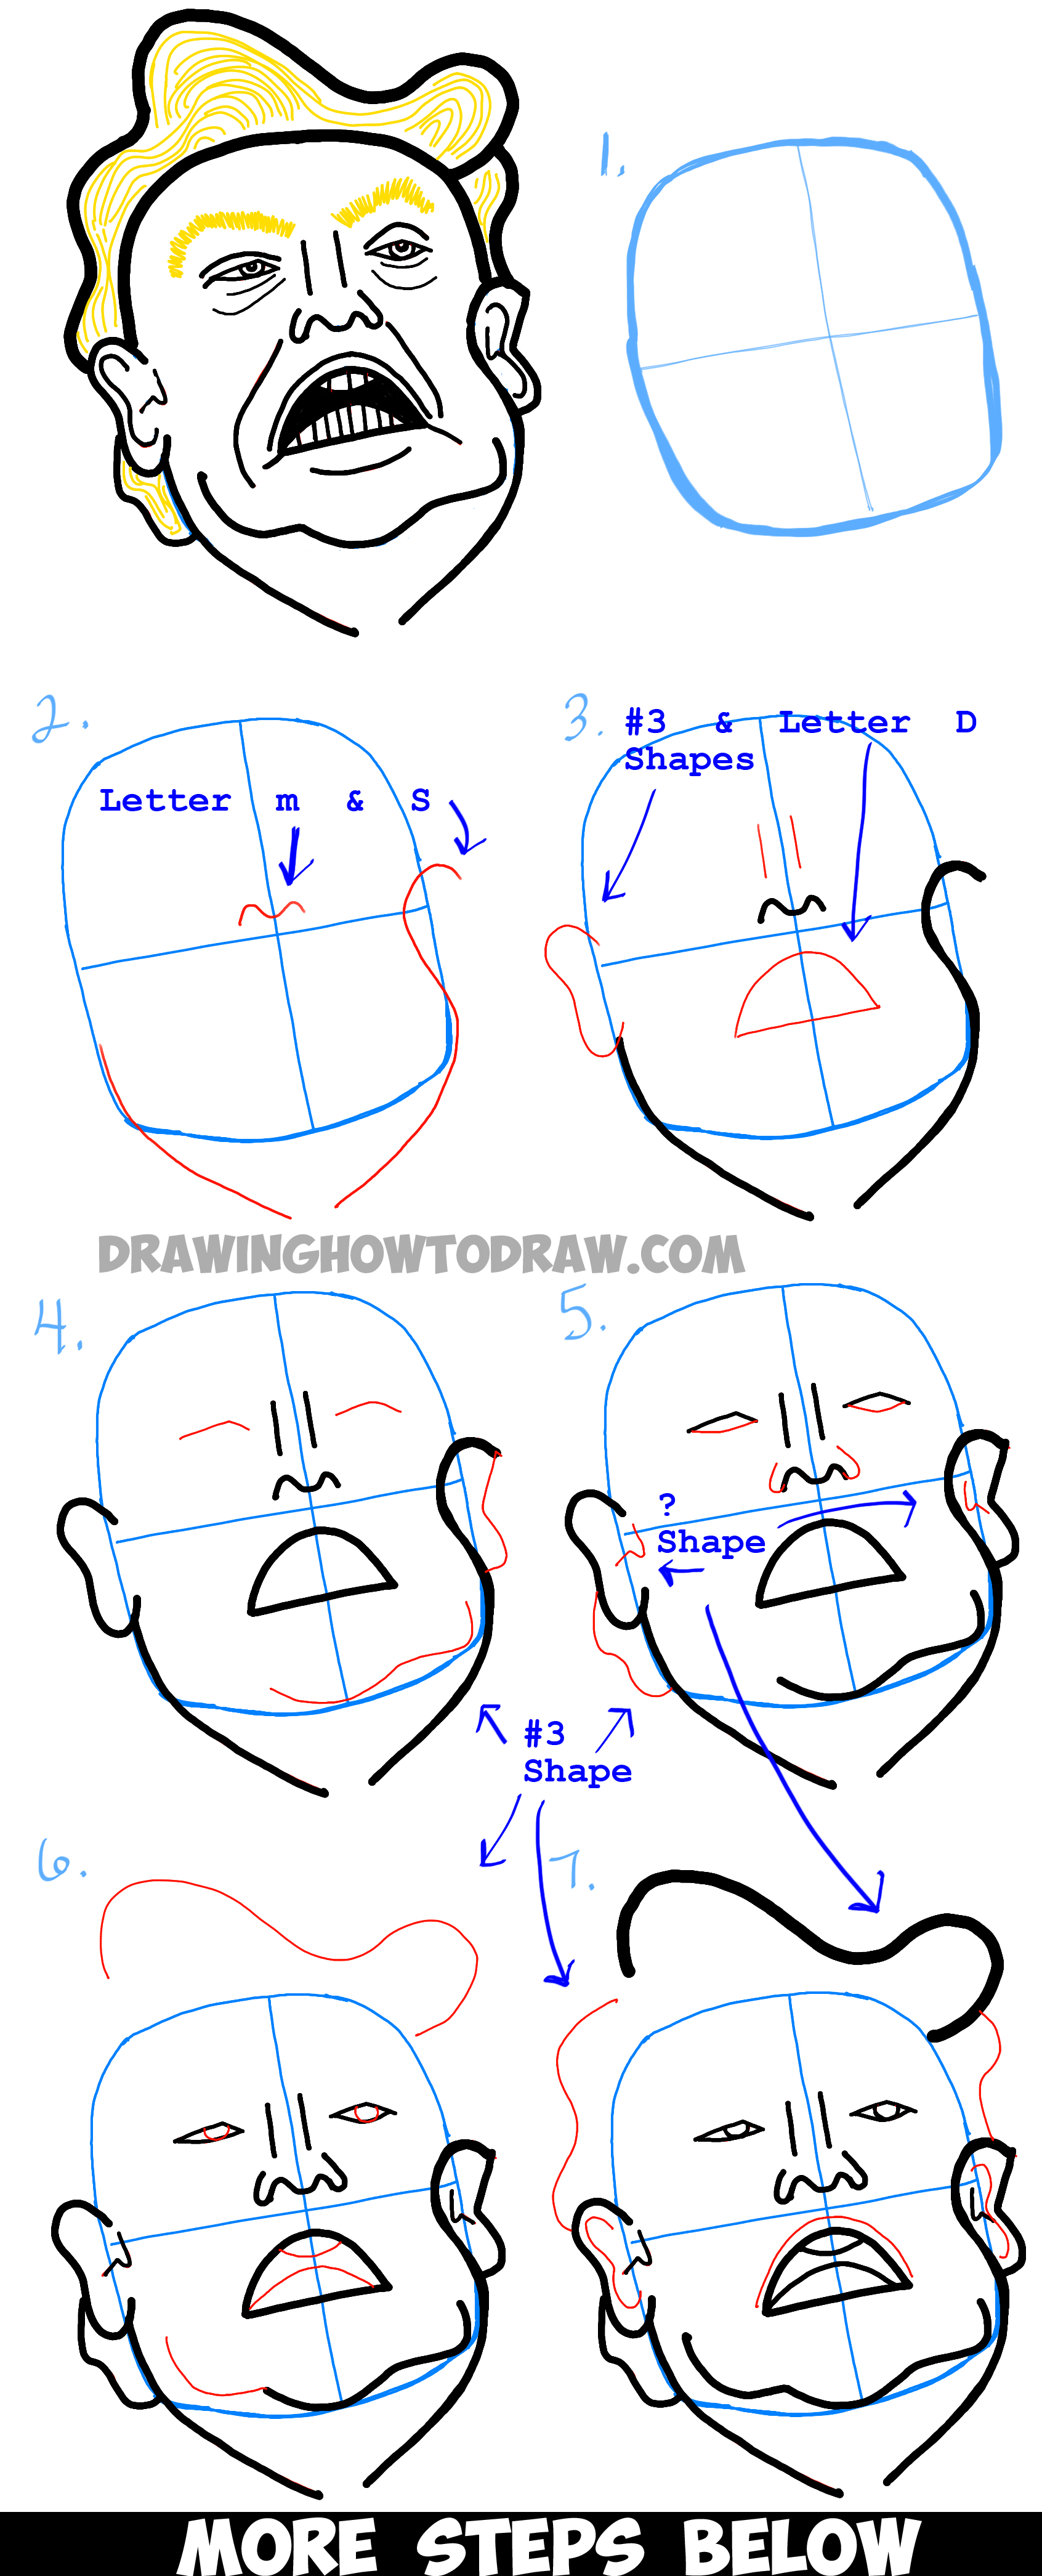 How To Draw Donald Trump Caricature Or Illustration  Step By Step Drawing  Tutorial